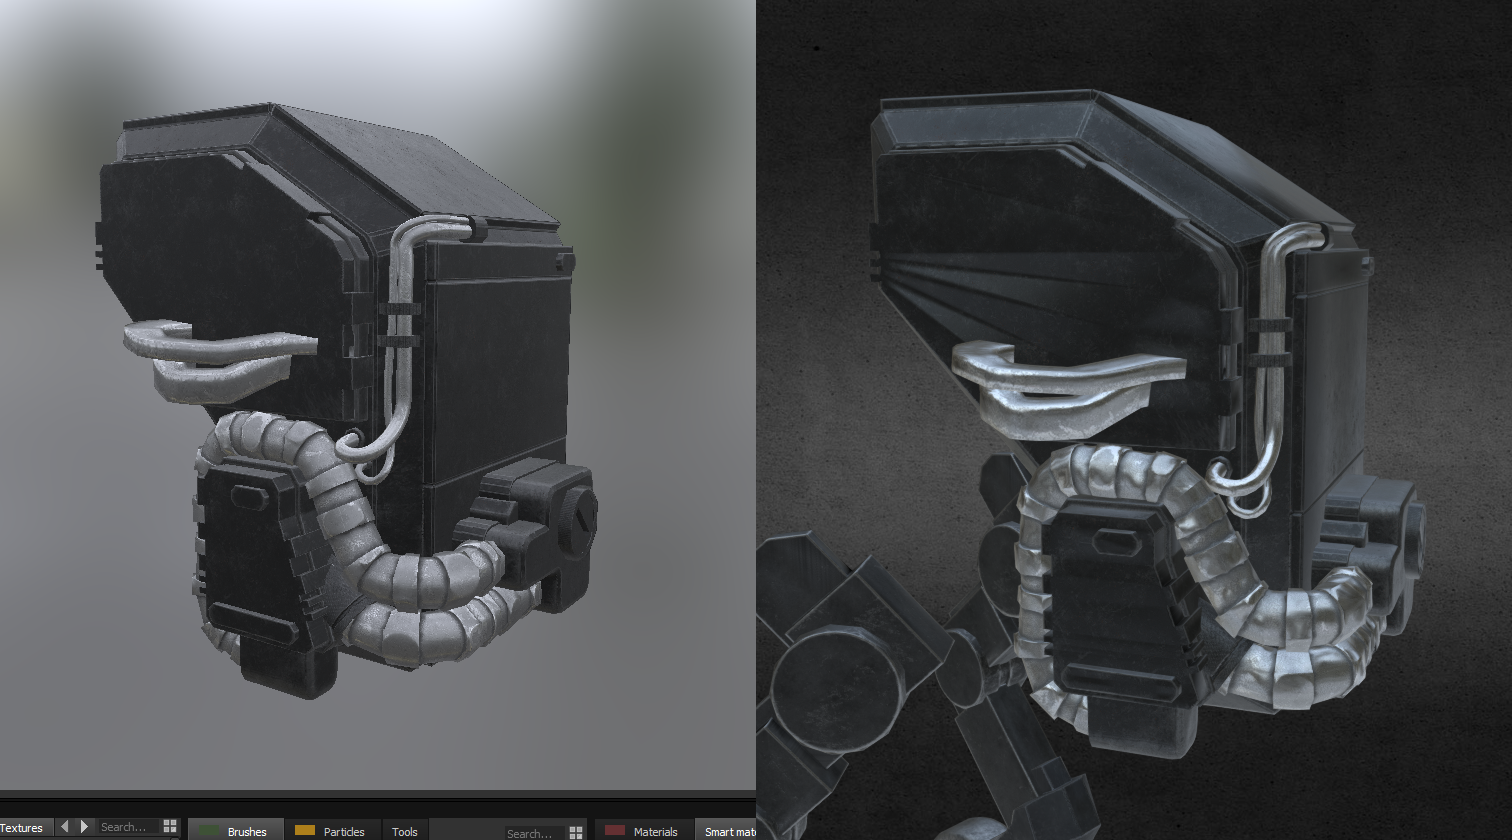 What is wrong with my Normals? - Support - Sketchfab Forum